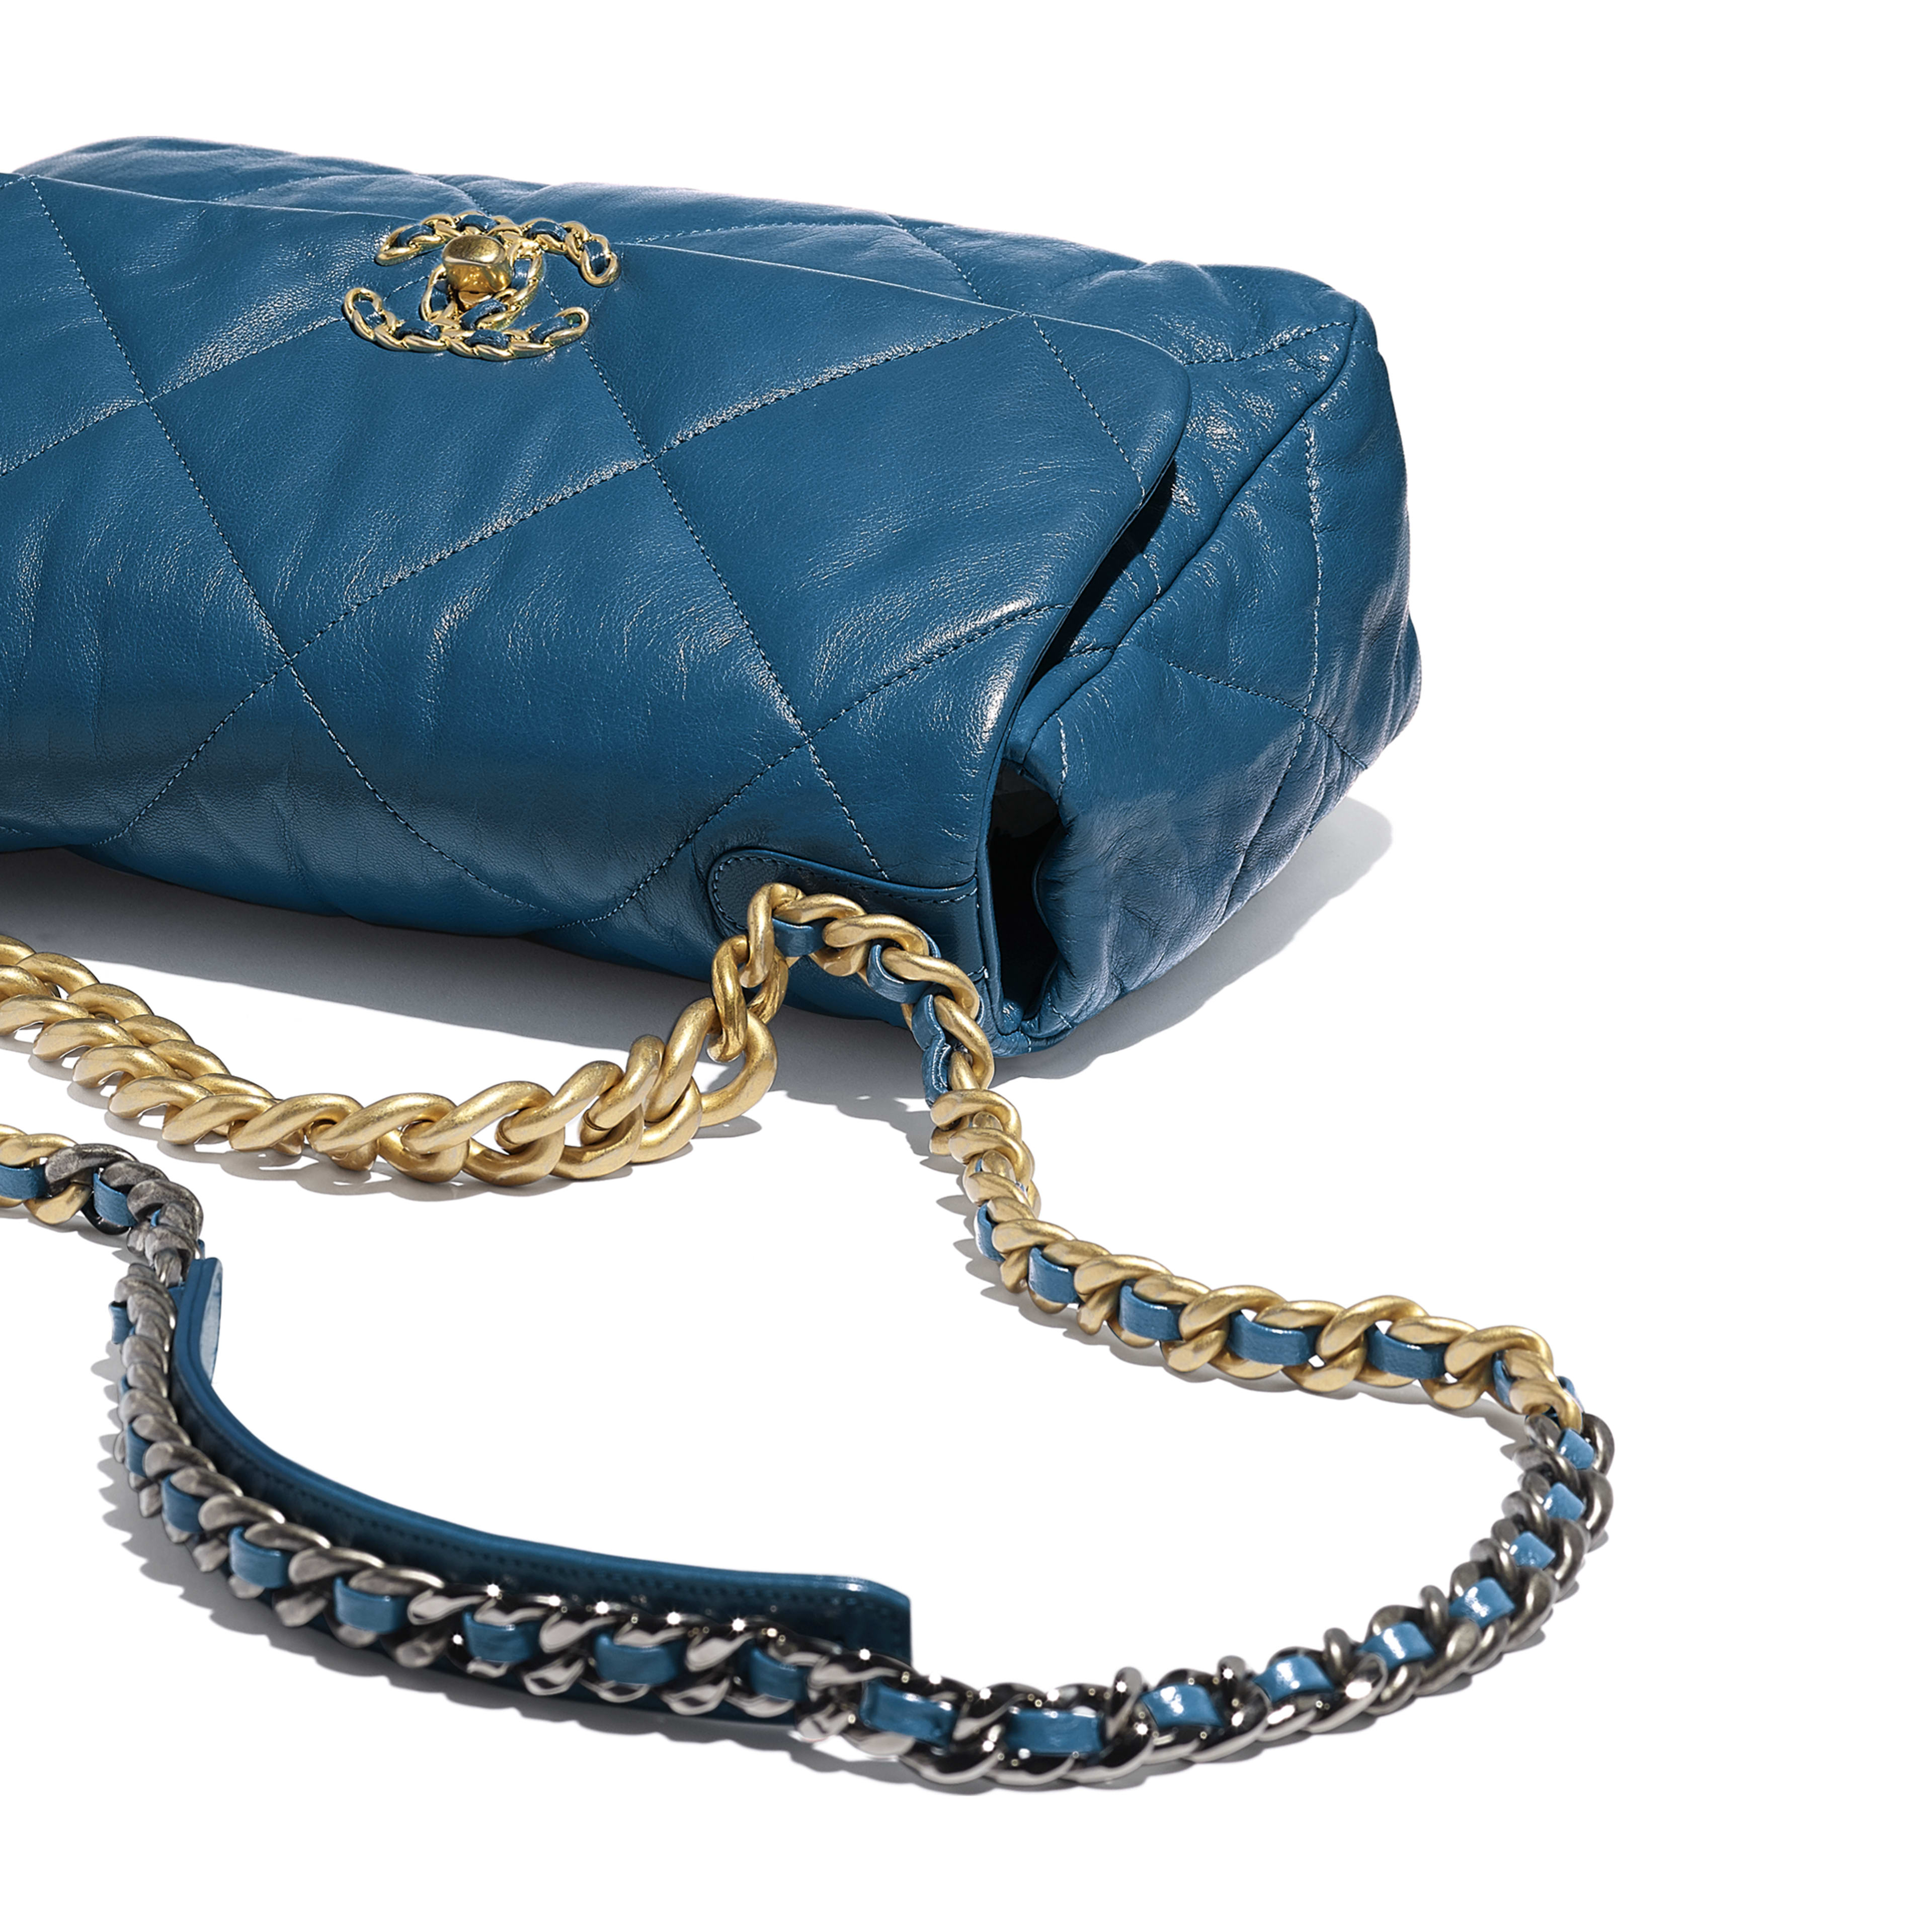 CHANEL 19 Large Flap Bag - Turquoise - Goatskin, Gold-Tone, Silver-Tone & Ruthenium-Finish Metal - Extra view - see full sized version